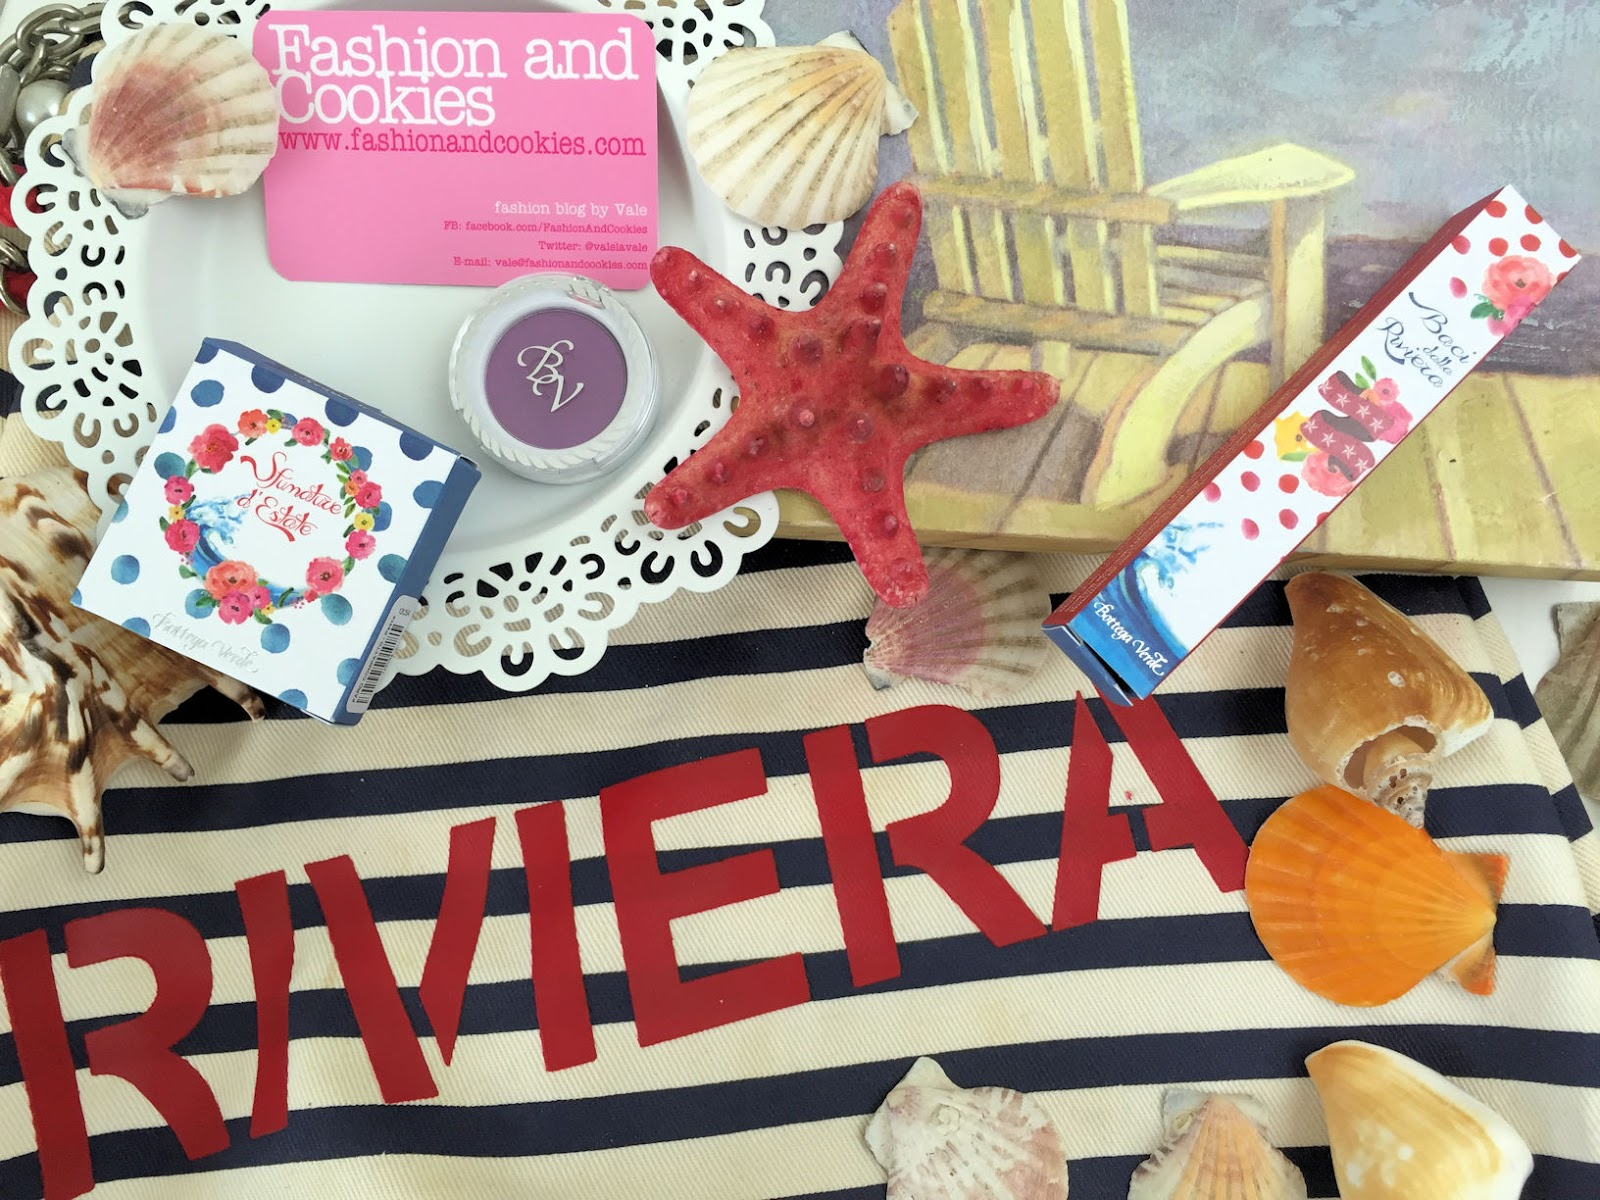 Collezione Riviera  Mediterranea di Bottega Verde su Fashion and Cookies beauty blog, beauty blogger